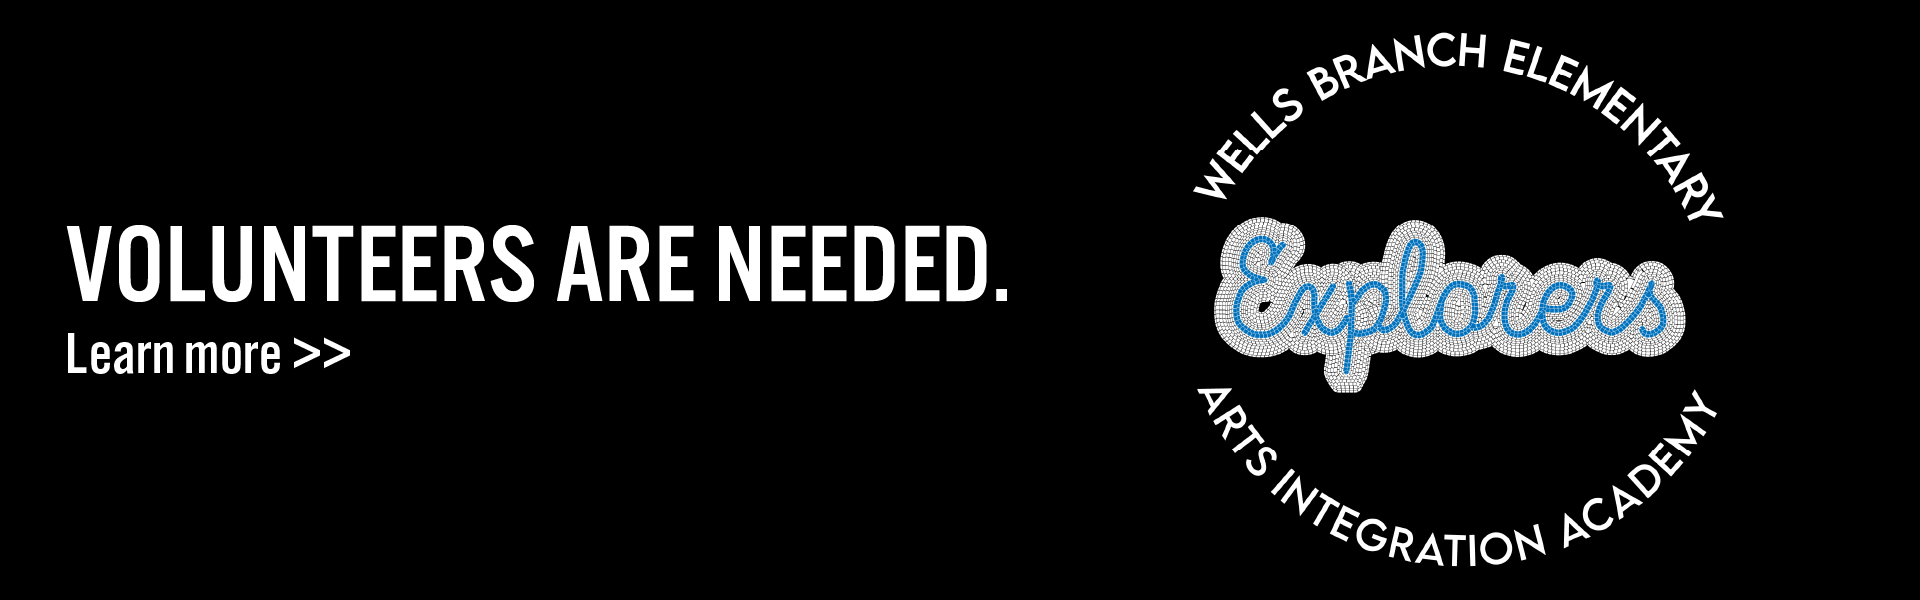 Volunteers are needed. Learn more here.